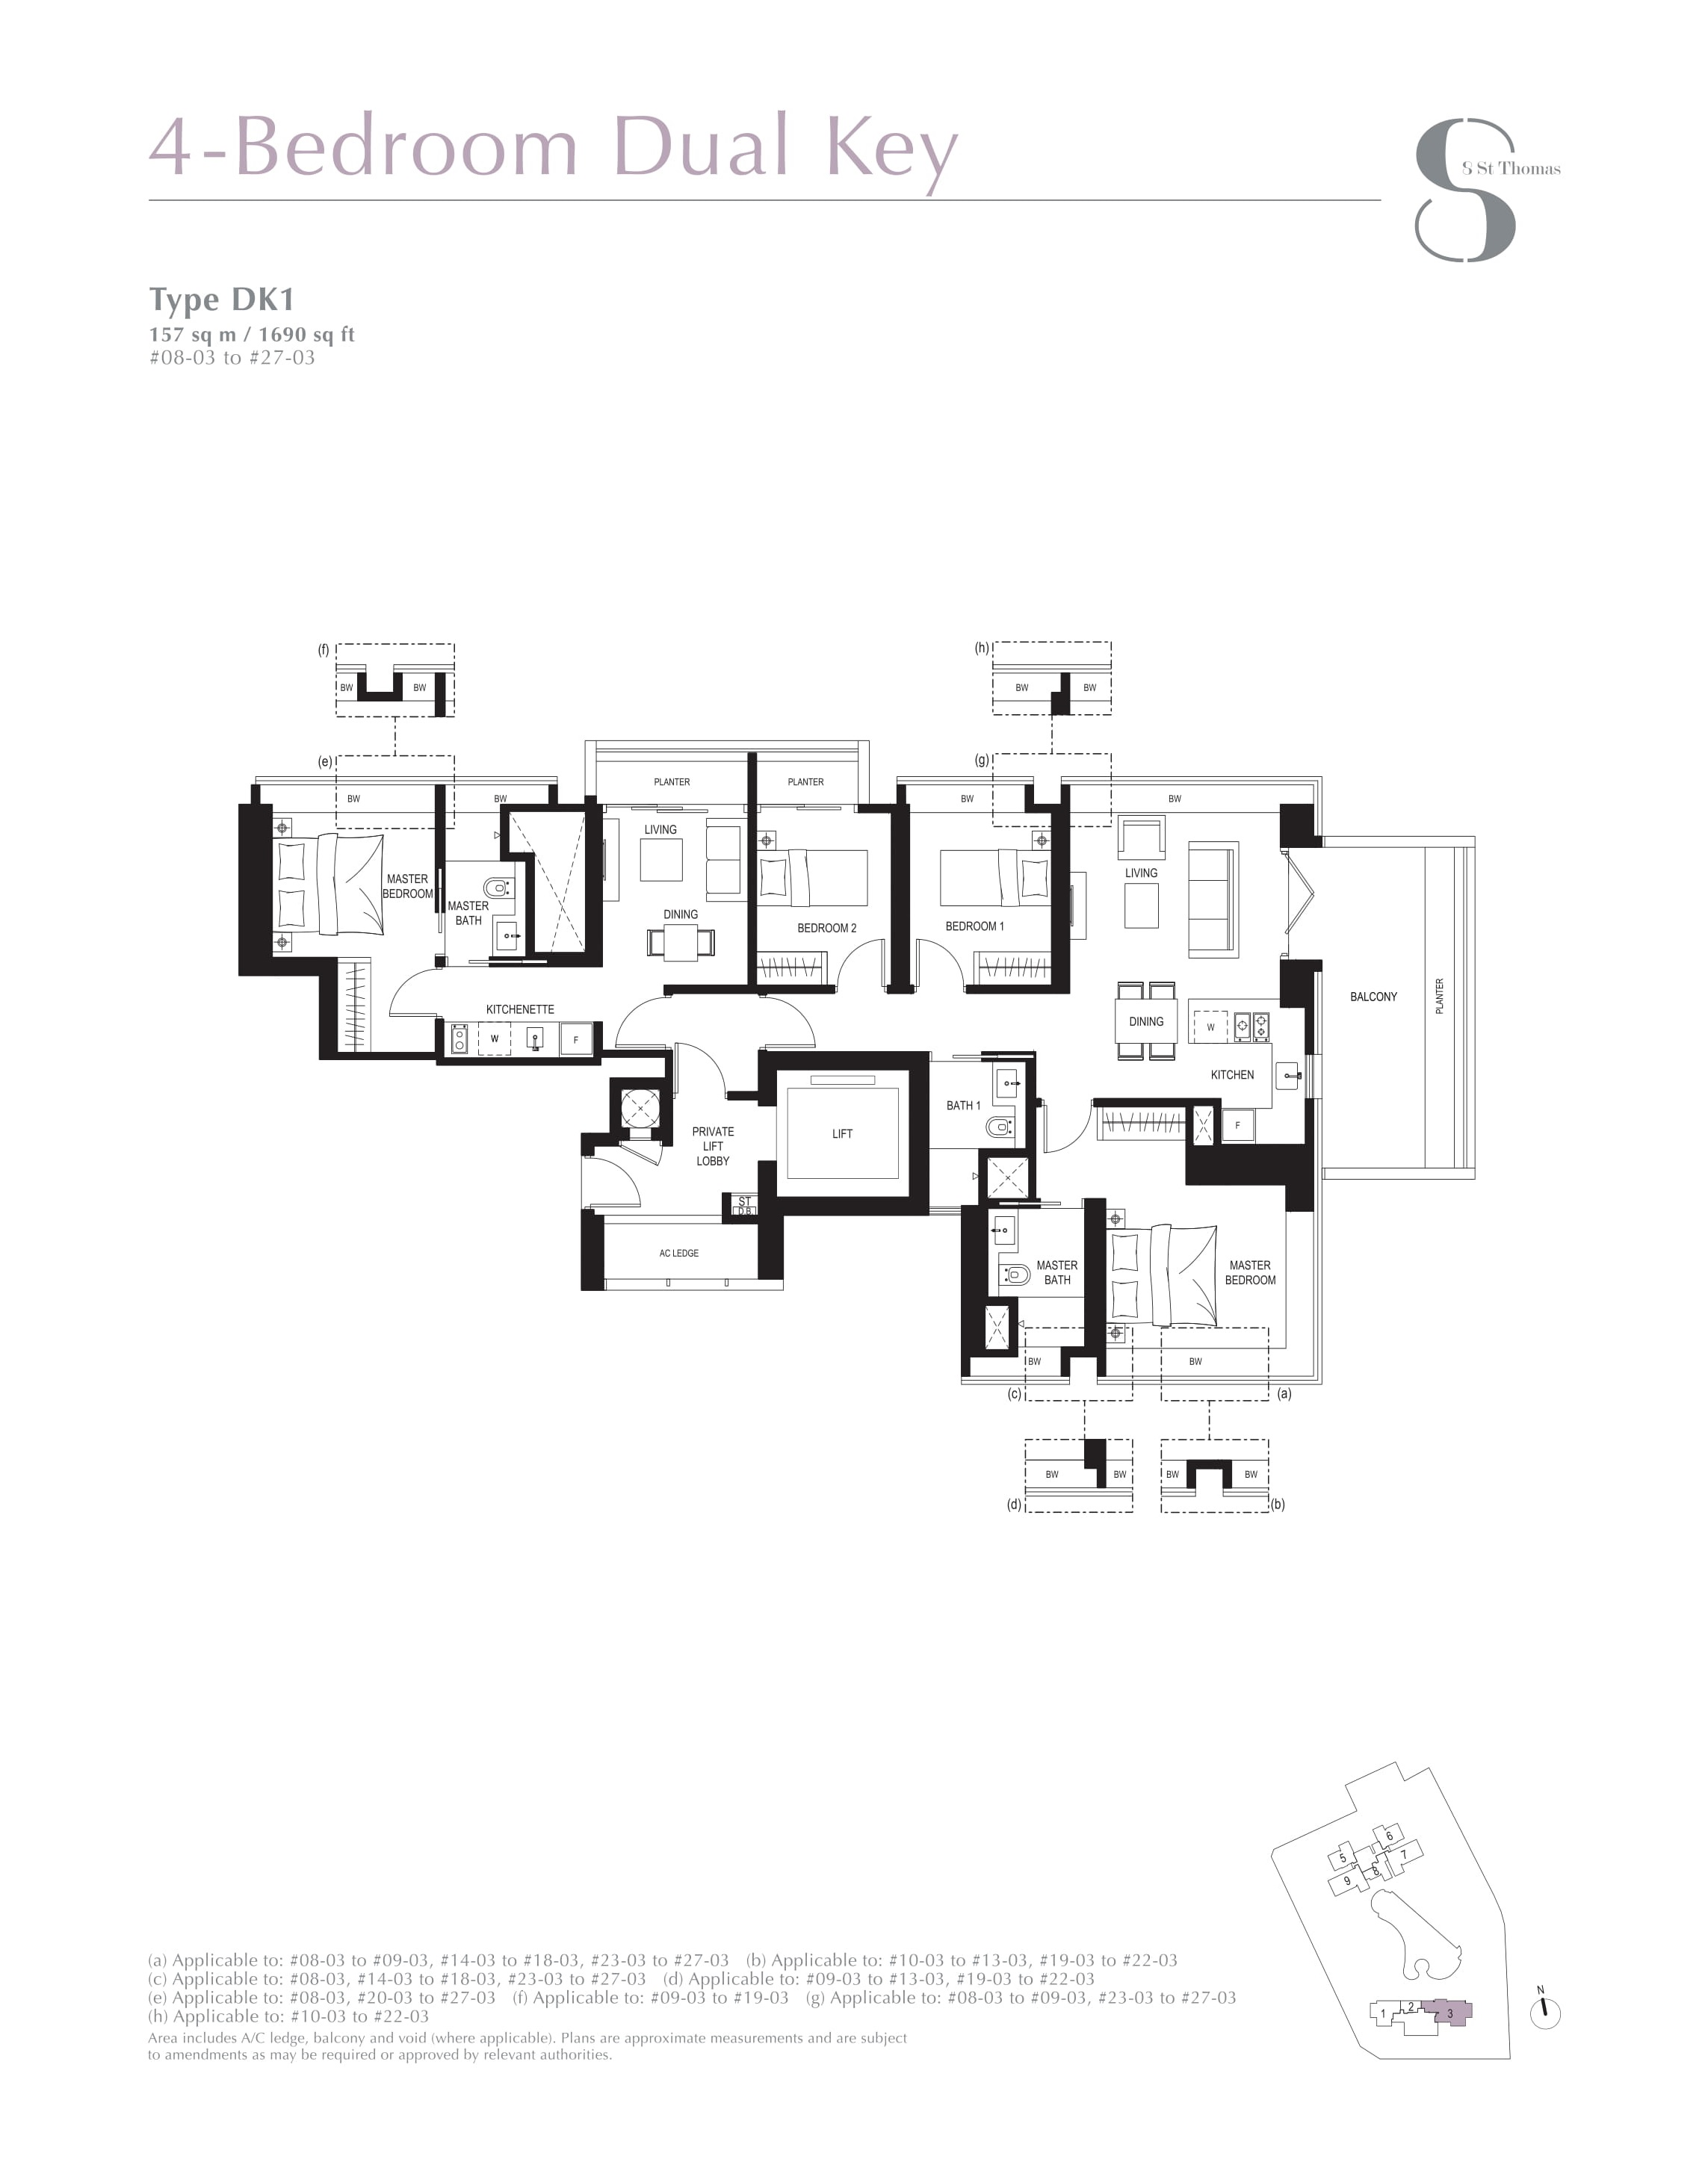 8 St Thomas 4 Bedroom Dual Key Floor Plans Type DK1